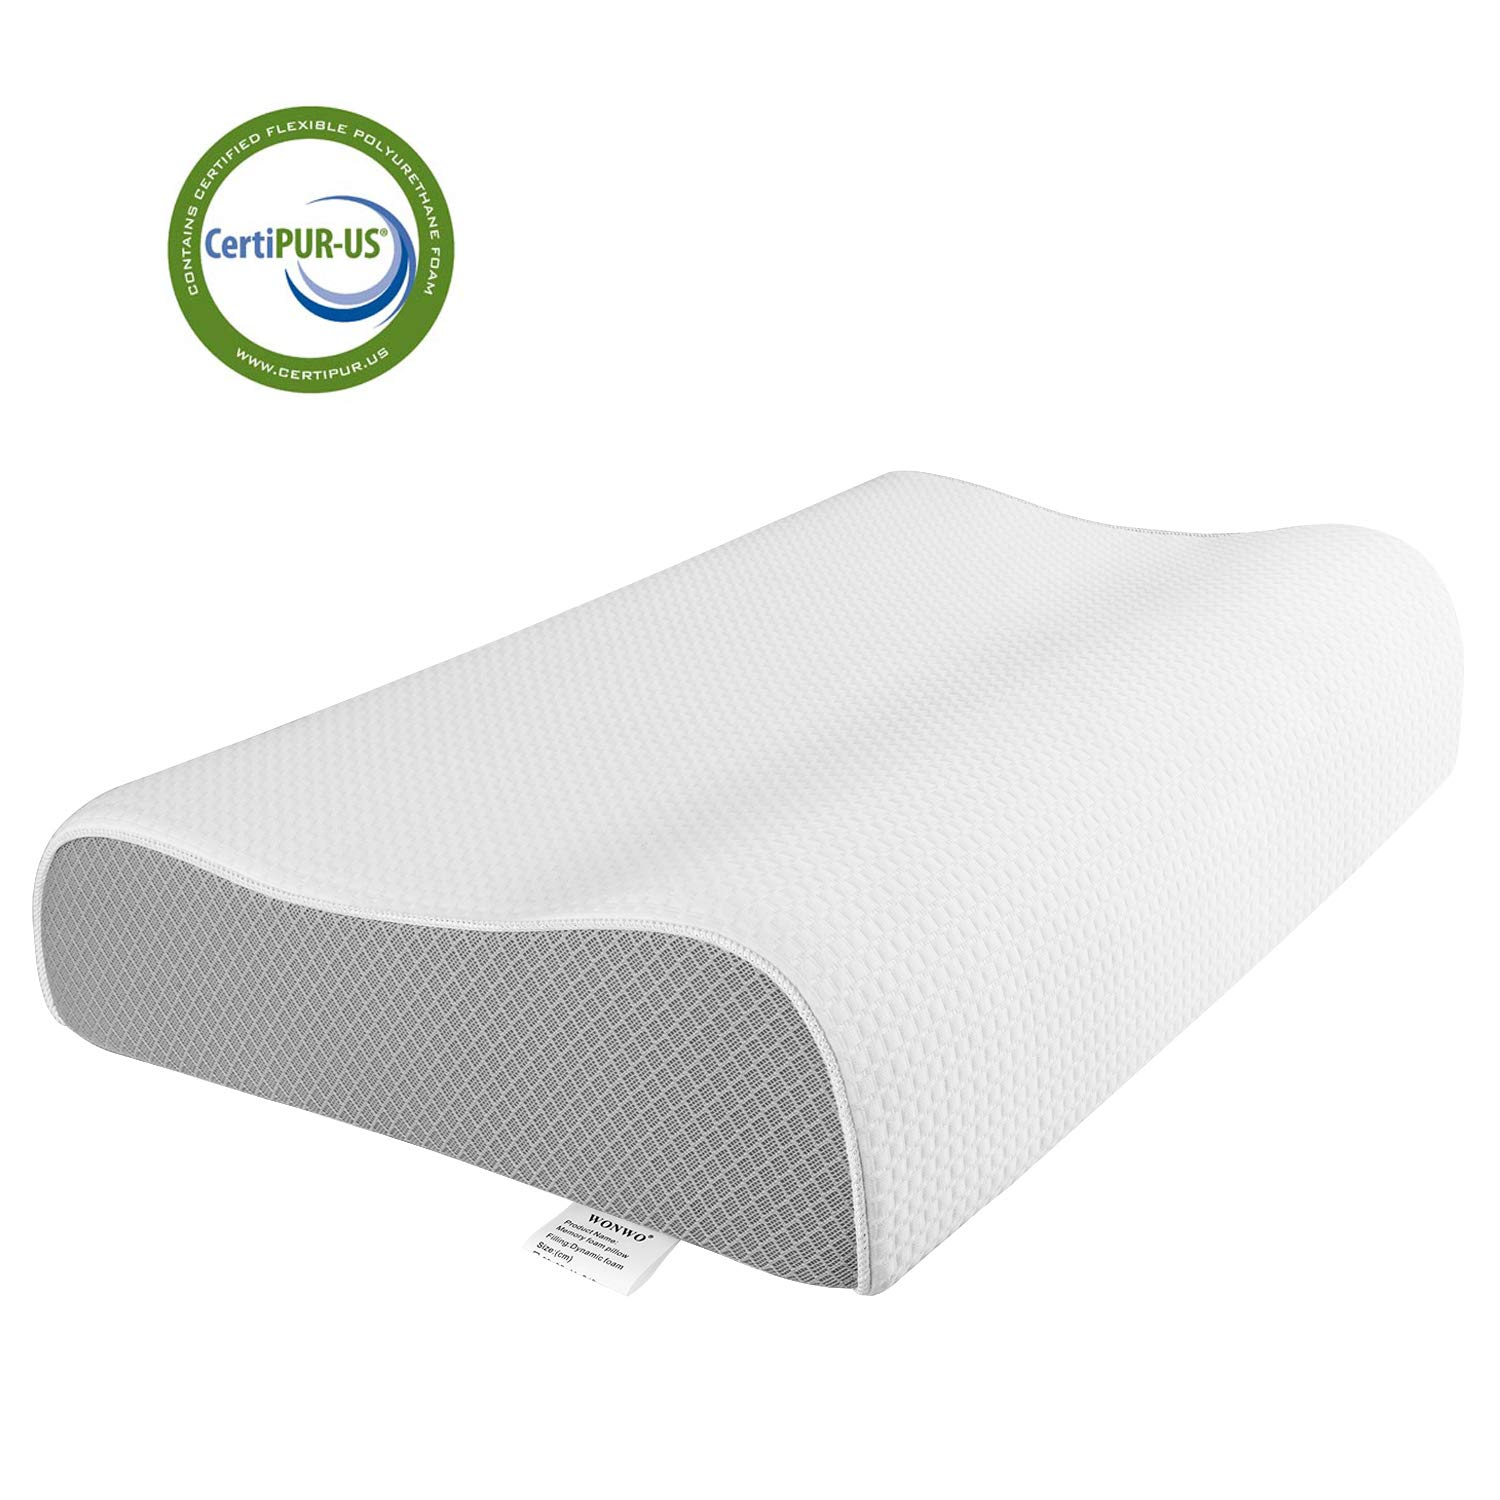 Wonwo Memory Foam Pillow, Orthopedic Sleeping Pillow Contour Cervical Bed Pillow for Neck Pain, Back Stomach Side Sleepers with Washable Pillowcase